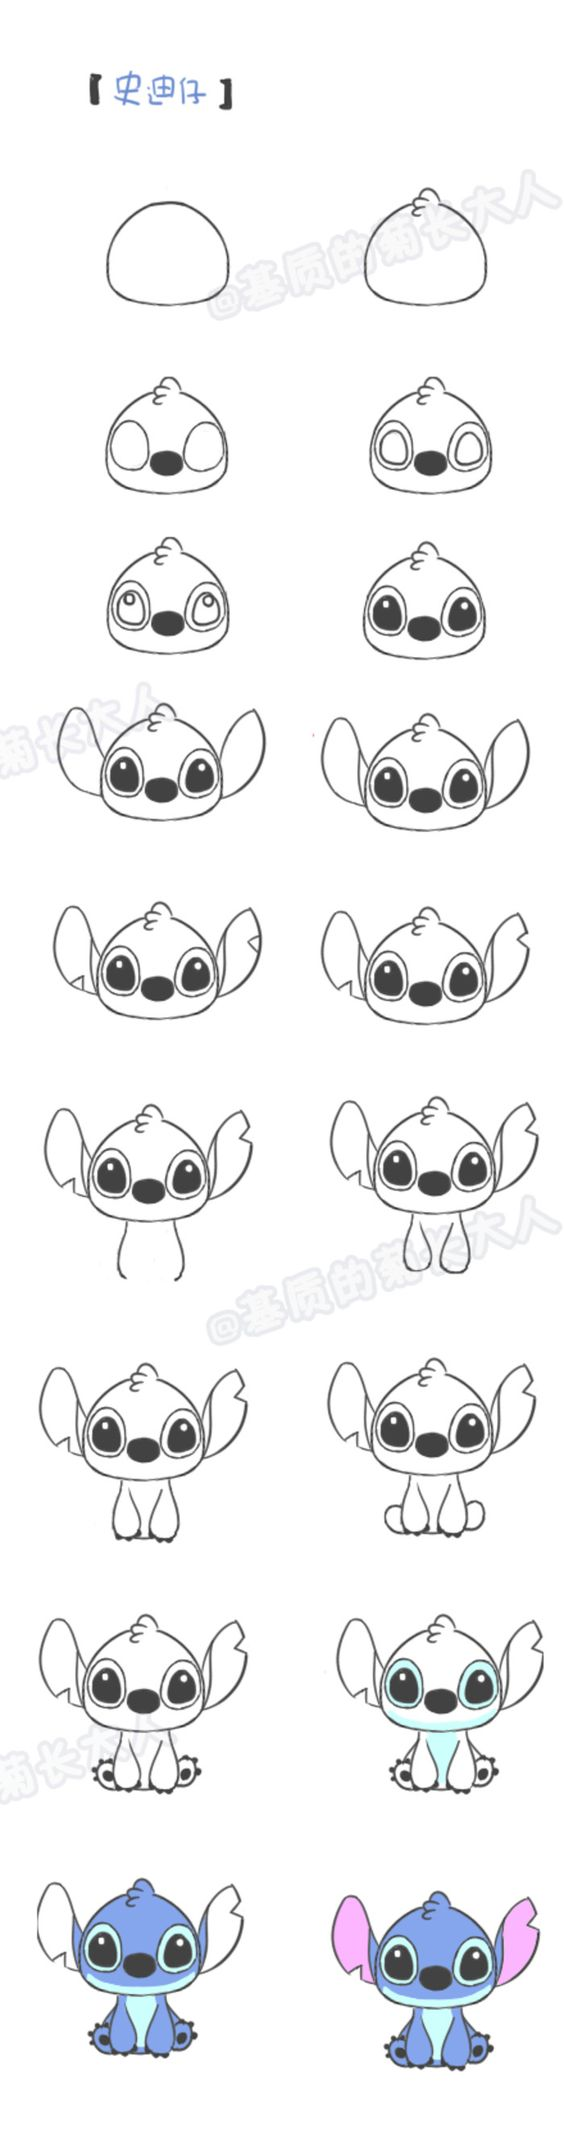 How to draw stitch a new drawing board pinterest for Girly drawings step by step